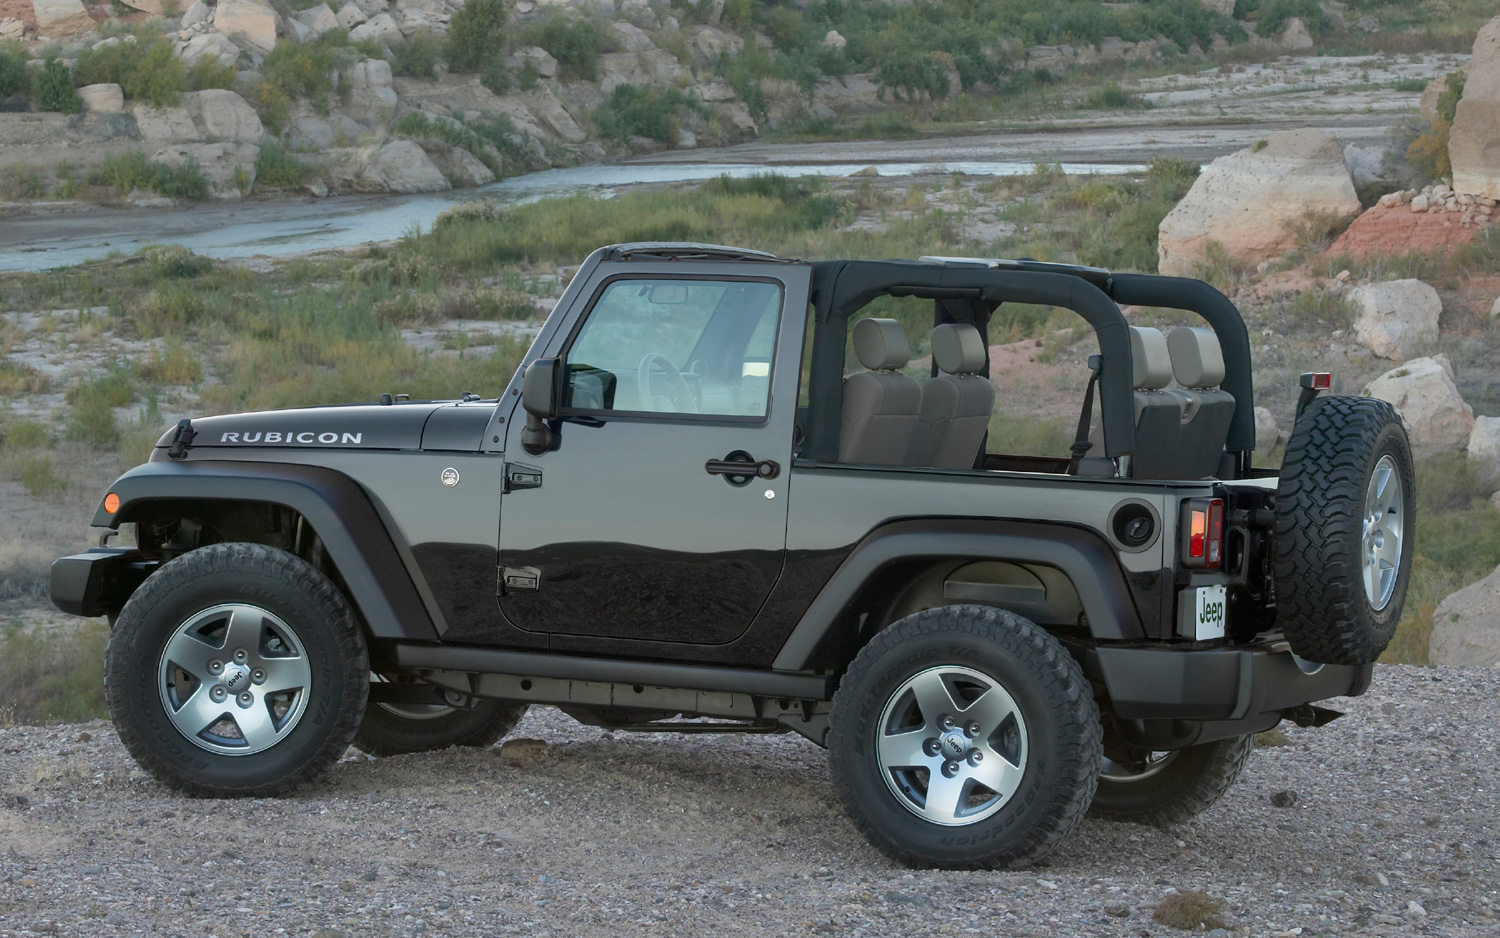 Attractive Recalled: 2010 Jeep Wrangler Skid Plate May Cause Fires